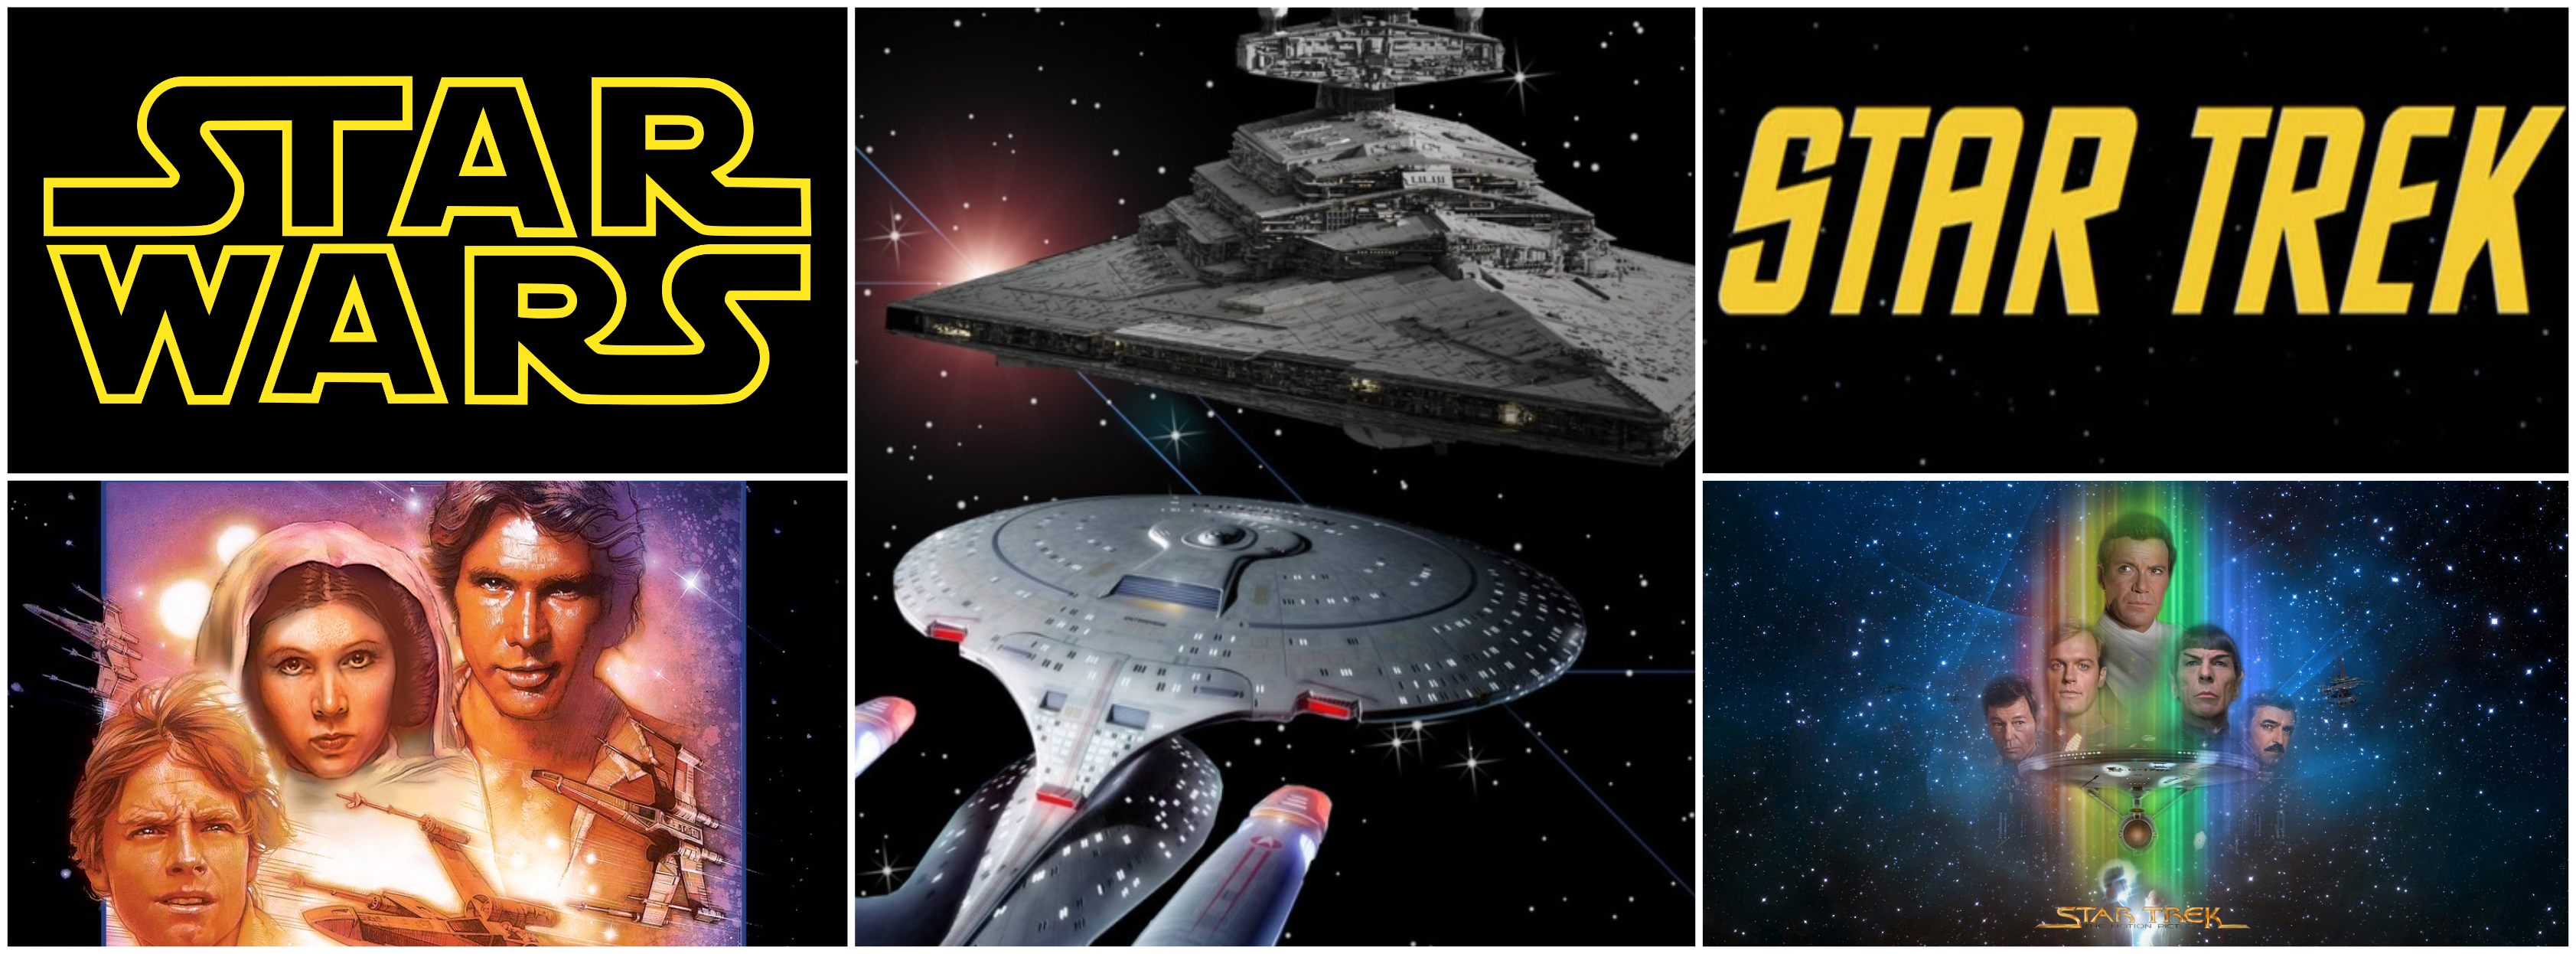 Plutôt Star Wars ou Star Trek ?